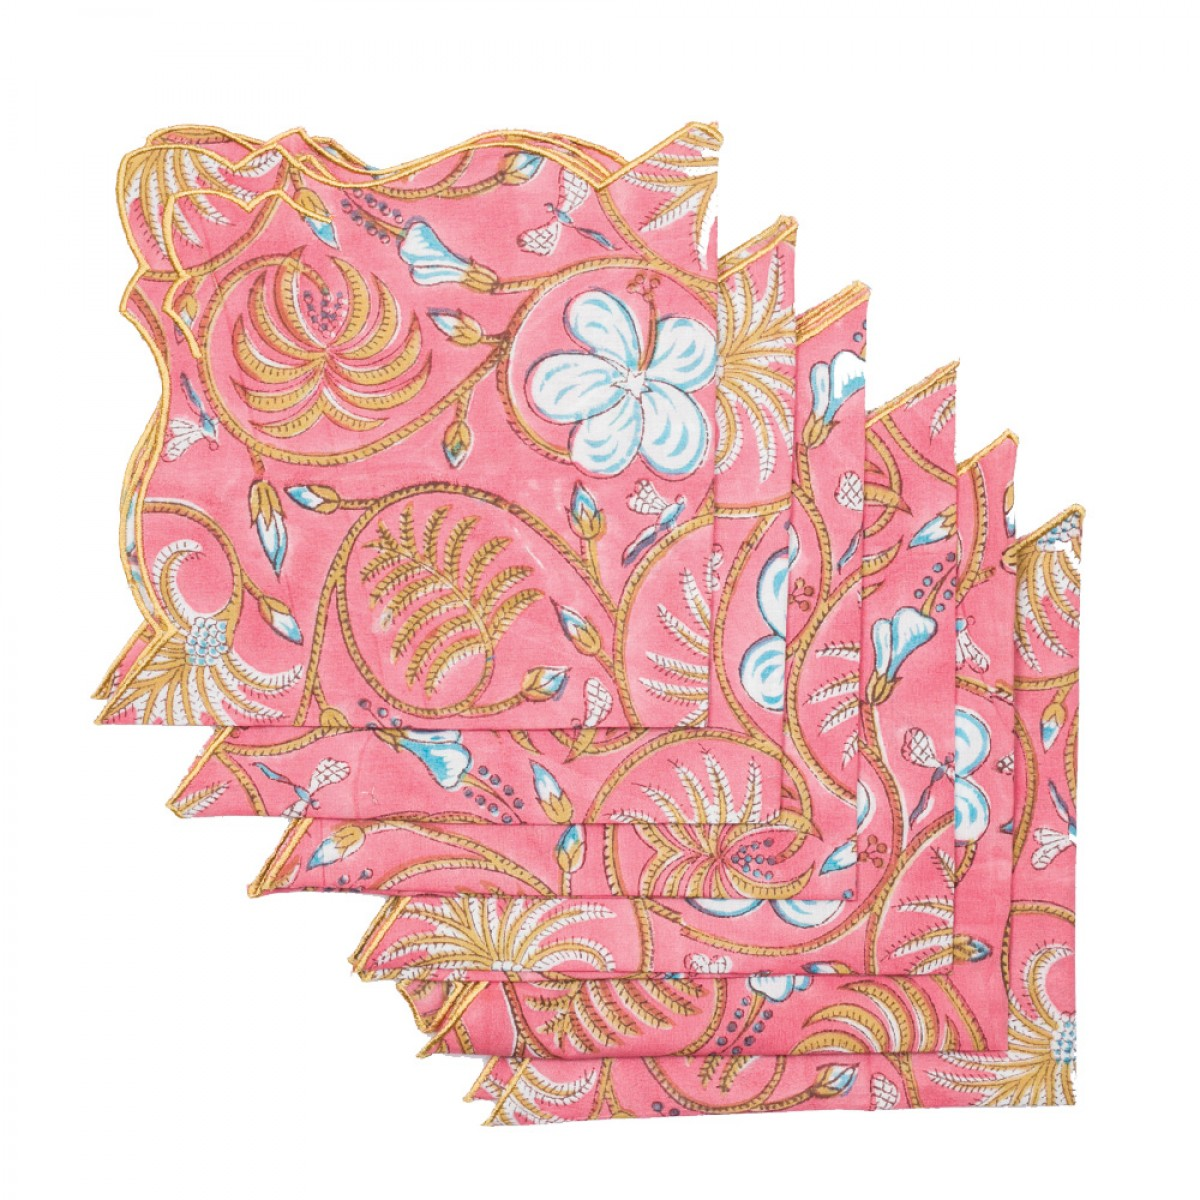 Cotton Scallop Embroidered Printed Napkin - Rose (Set of 6)